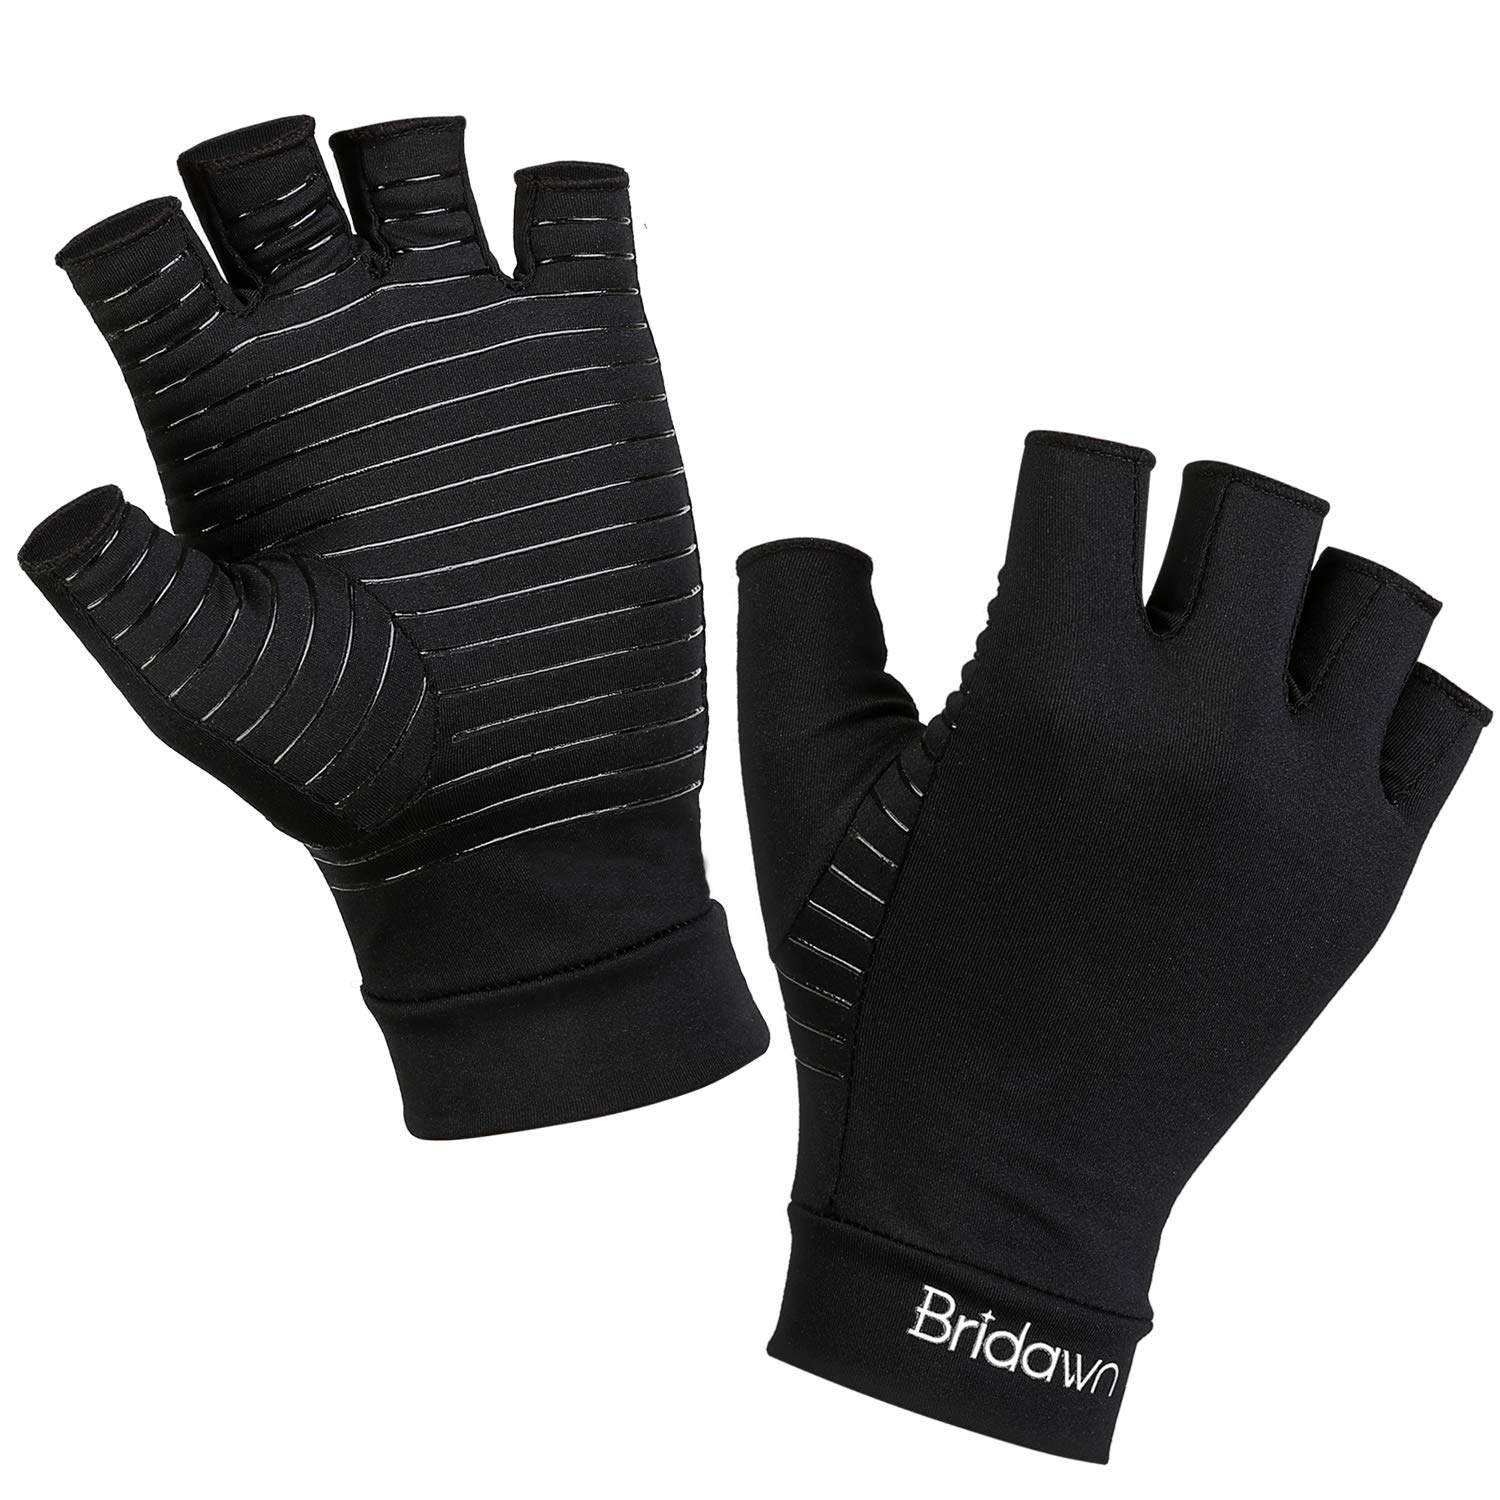 Bridawn Arthritis Compression Gloves Copper Fit Gloves Women Men High Copper Infused Fingerless for Pain Relief Rheumatoid Arthritis Hand Carpal Tunnel RSI Osteoarthritis Computer Typing, L by Bridawn